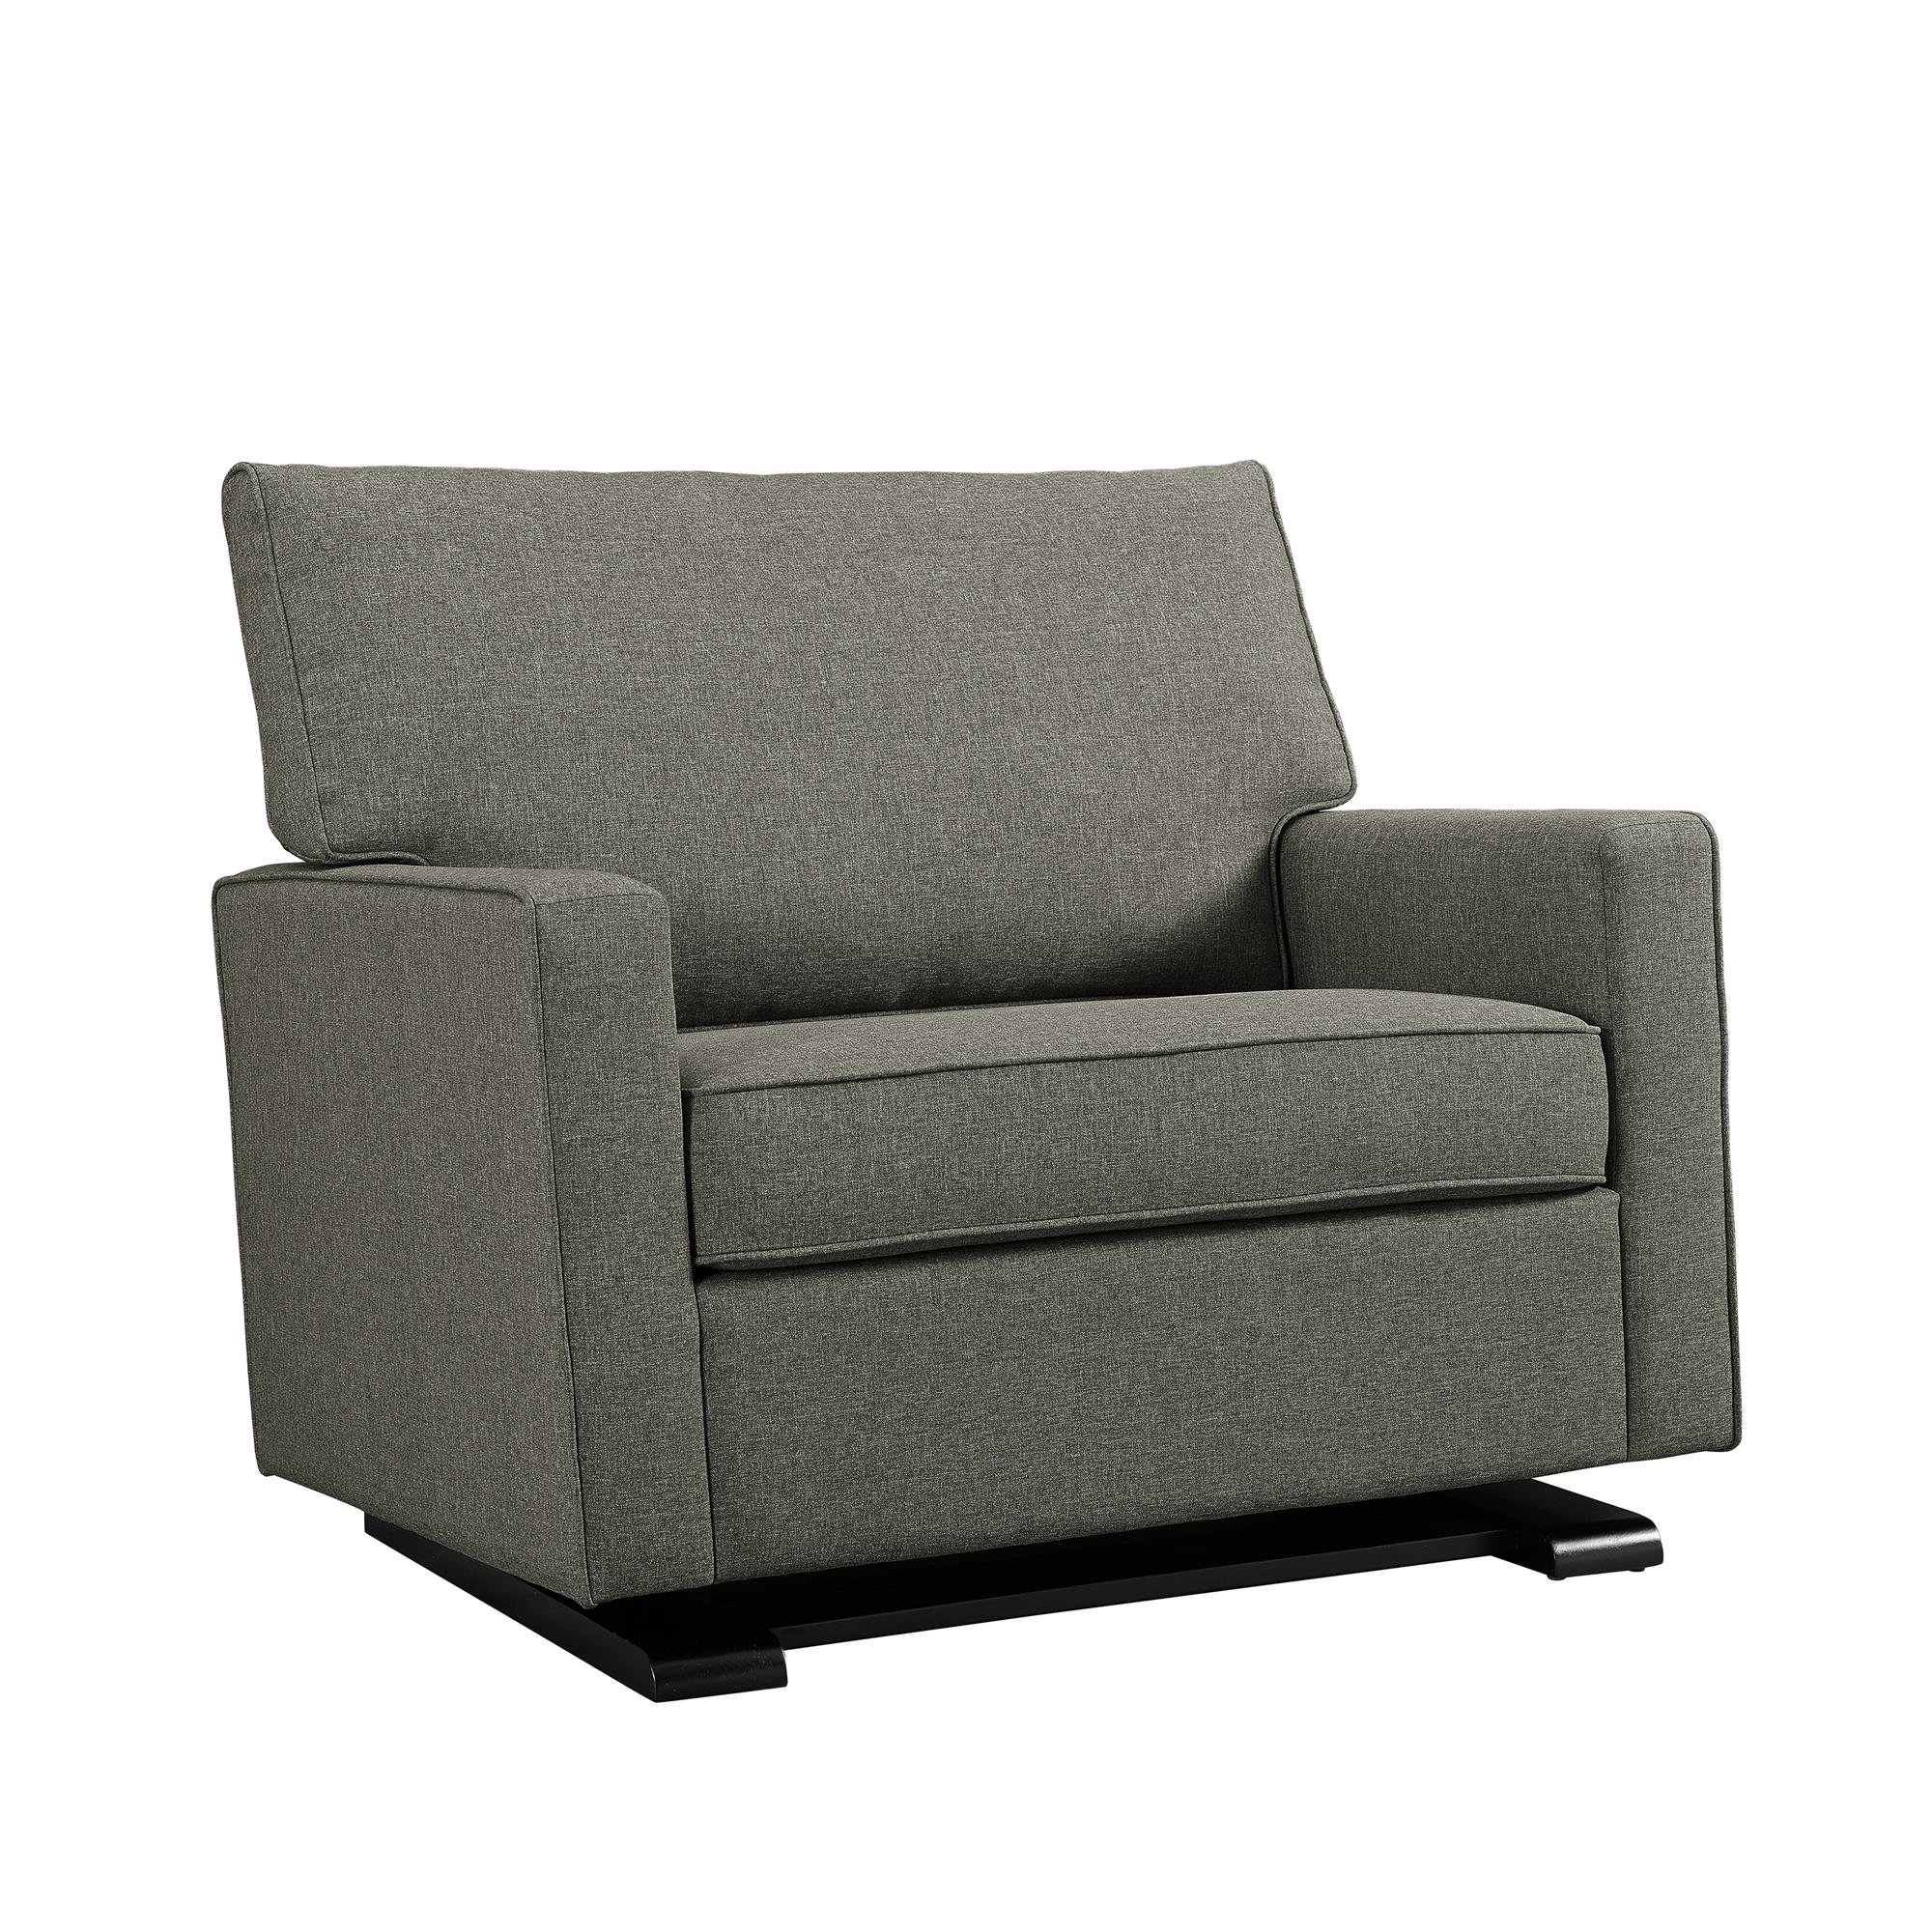 Baby Relax Coco Chair and a Half Glider, Gray by Baby Relax